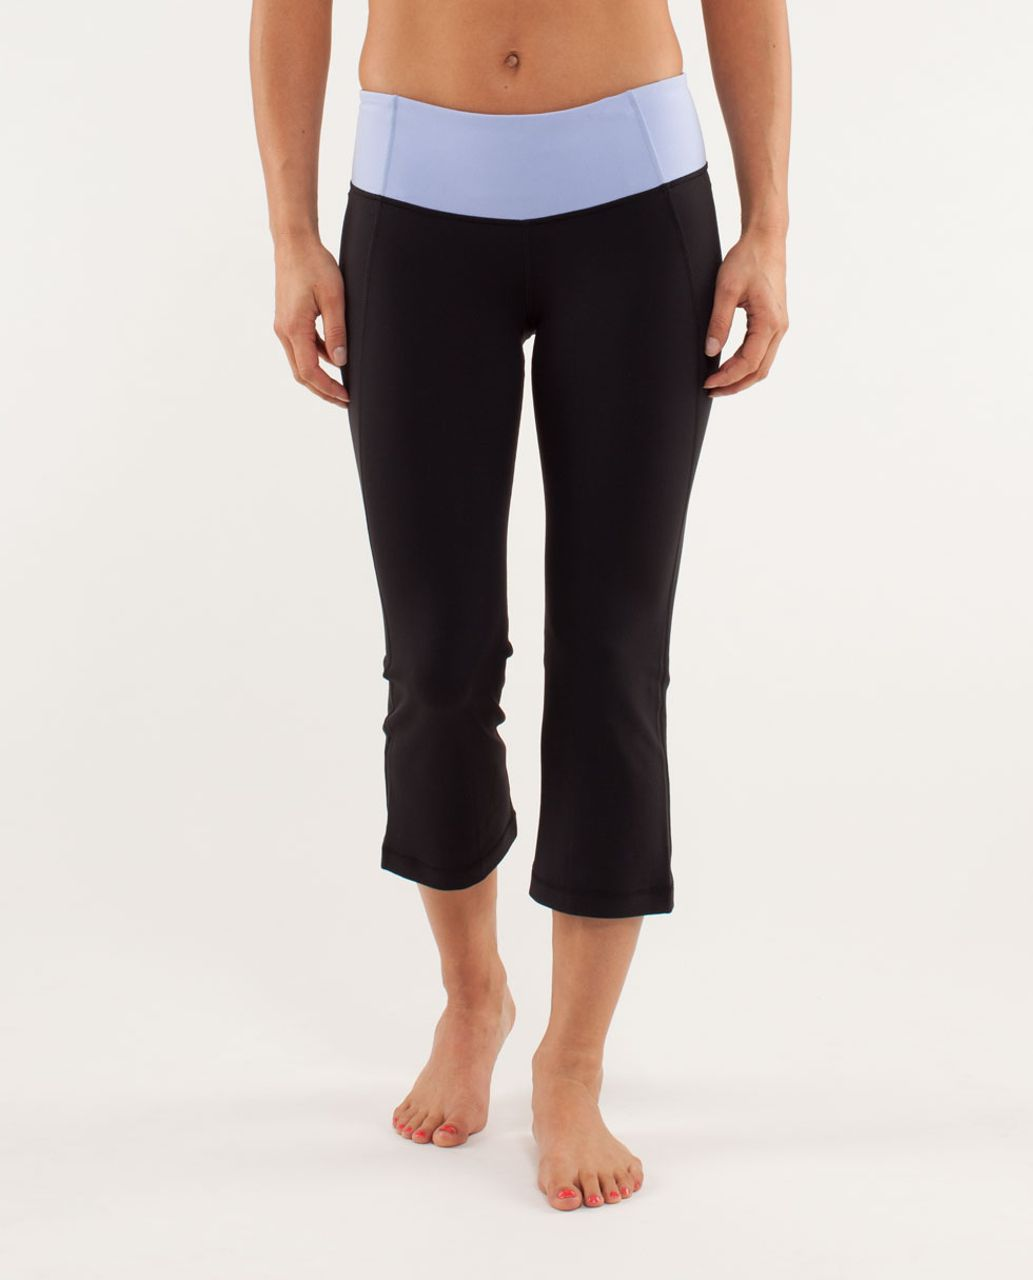 Lululemon Gather & Crow Crop - Black / Polar Haze / Sea Stripe Polar Haze Black